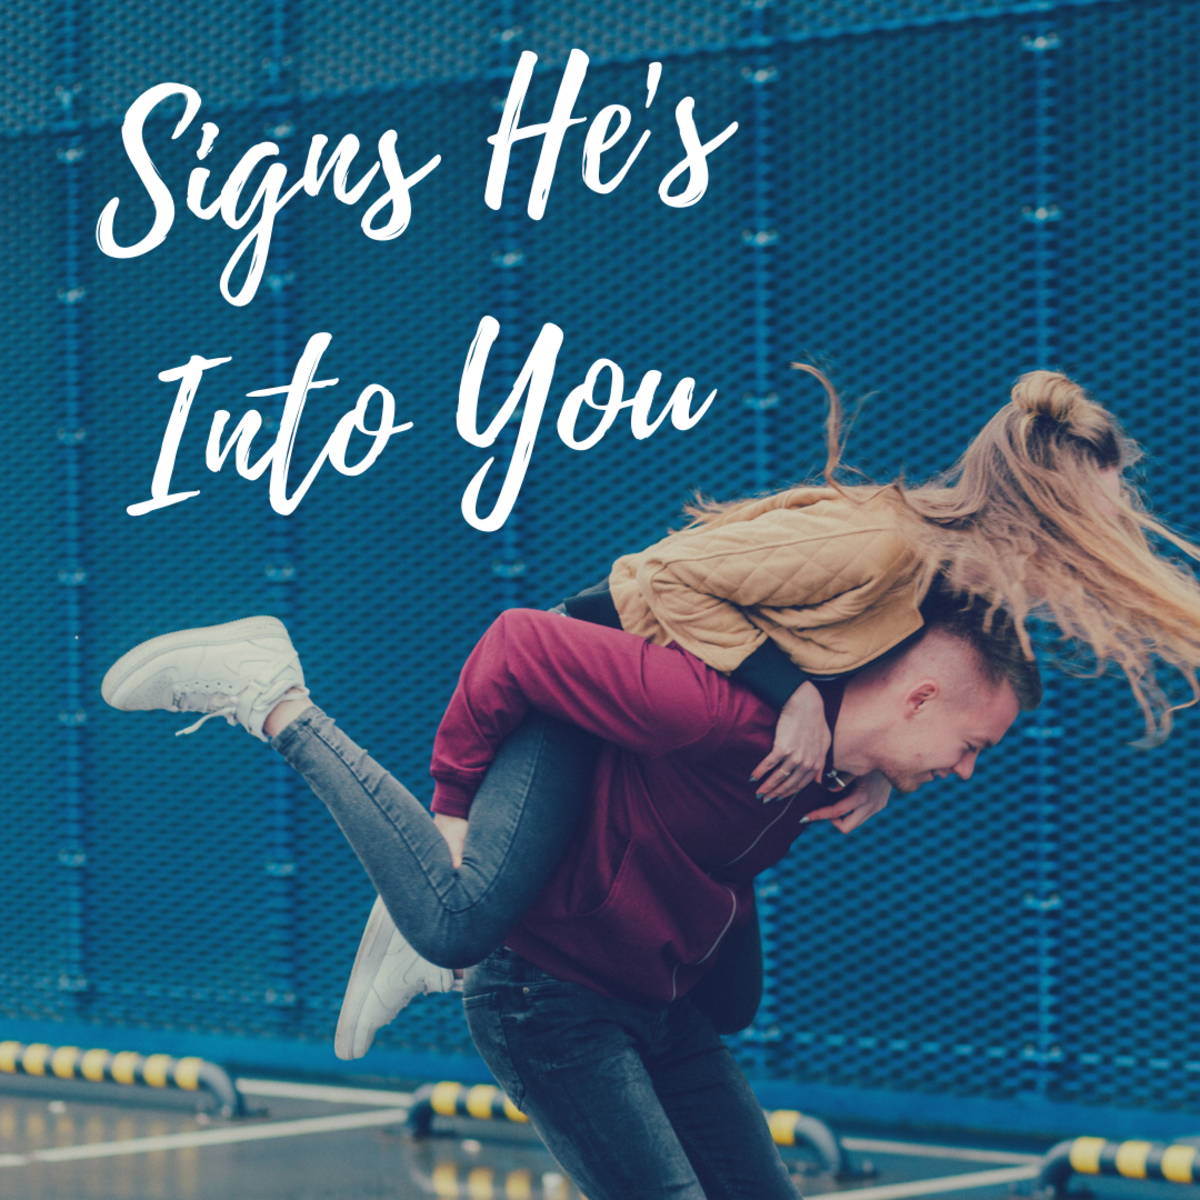 Does He Like Me? 55 Signs a Guy Likes You